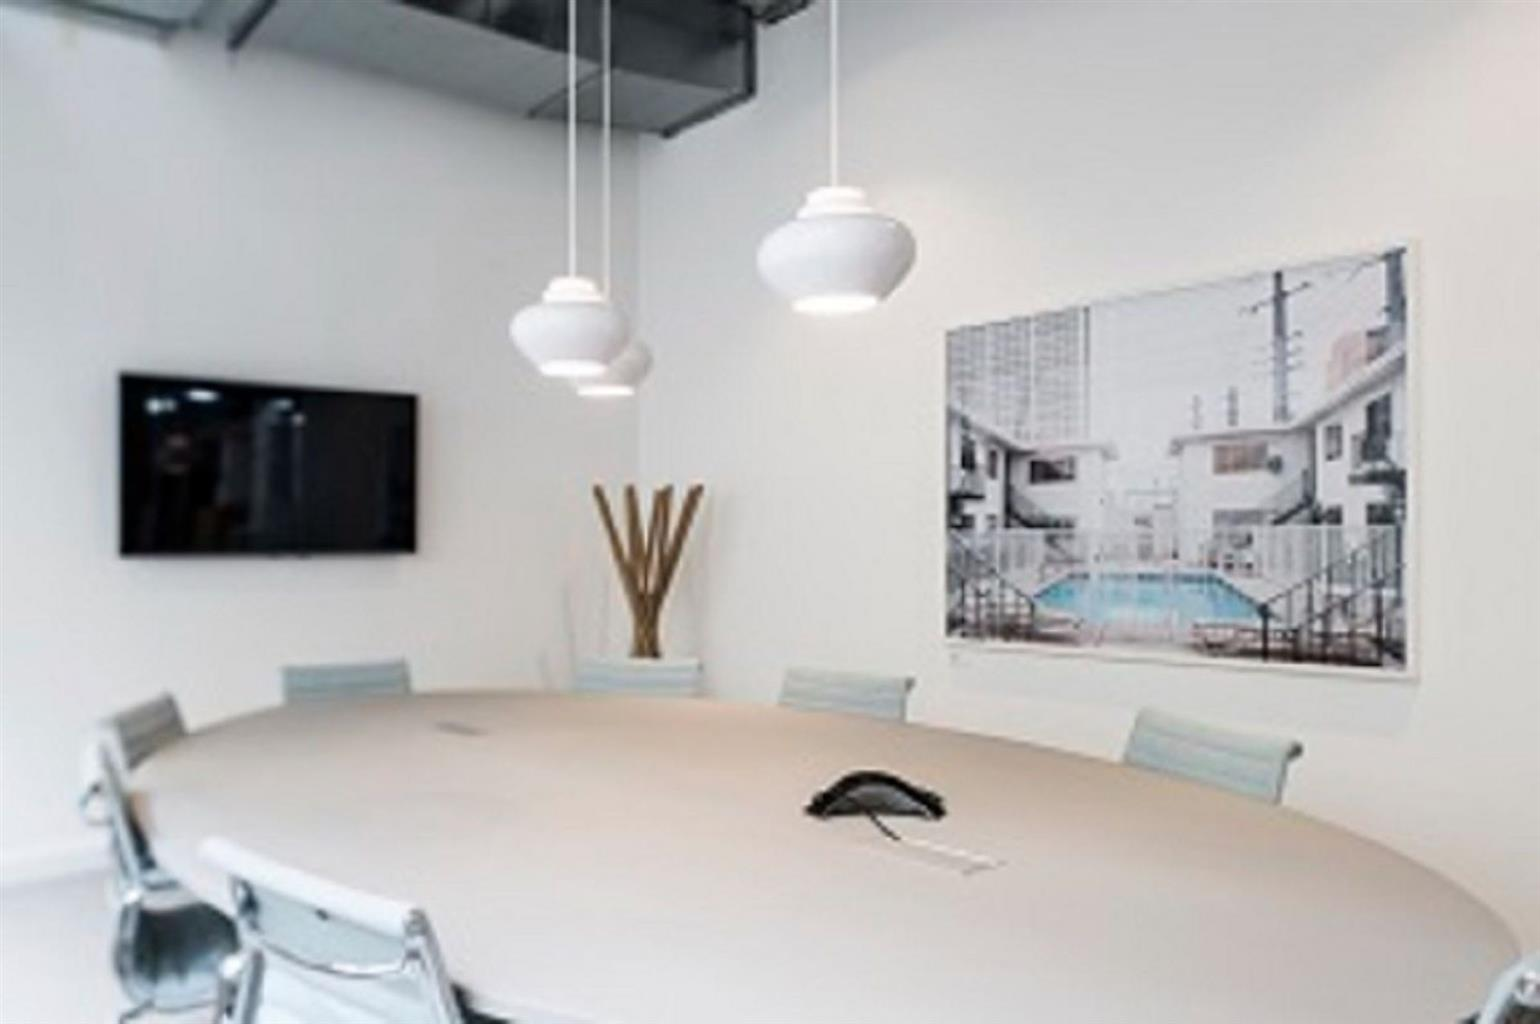 Office Rental Monthly in JOHANNESBURG